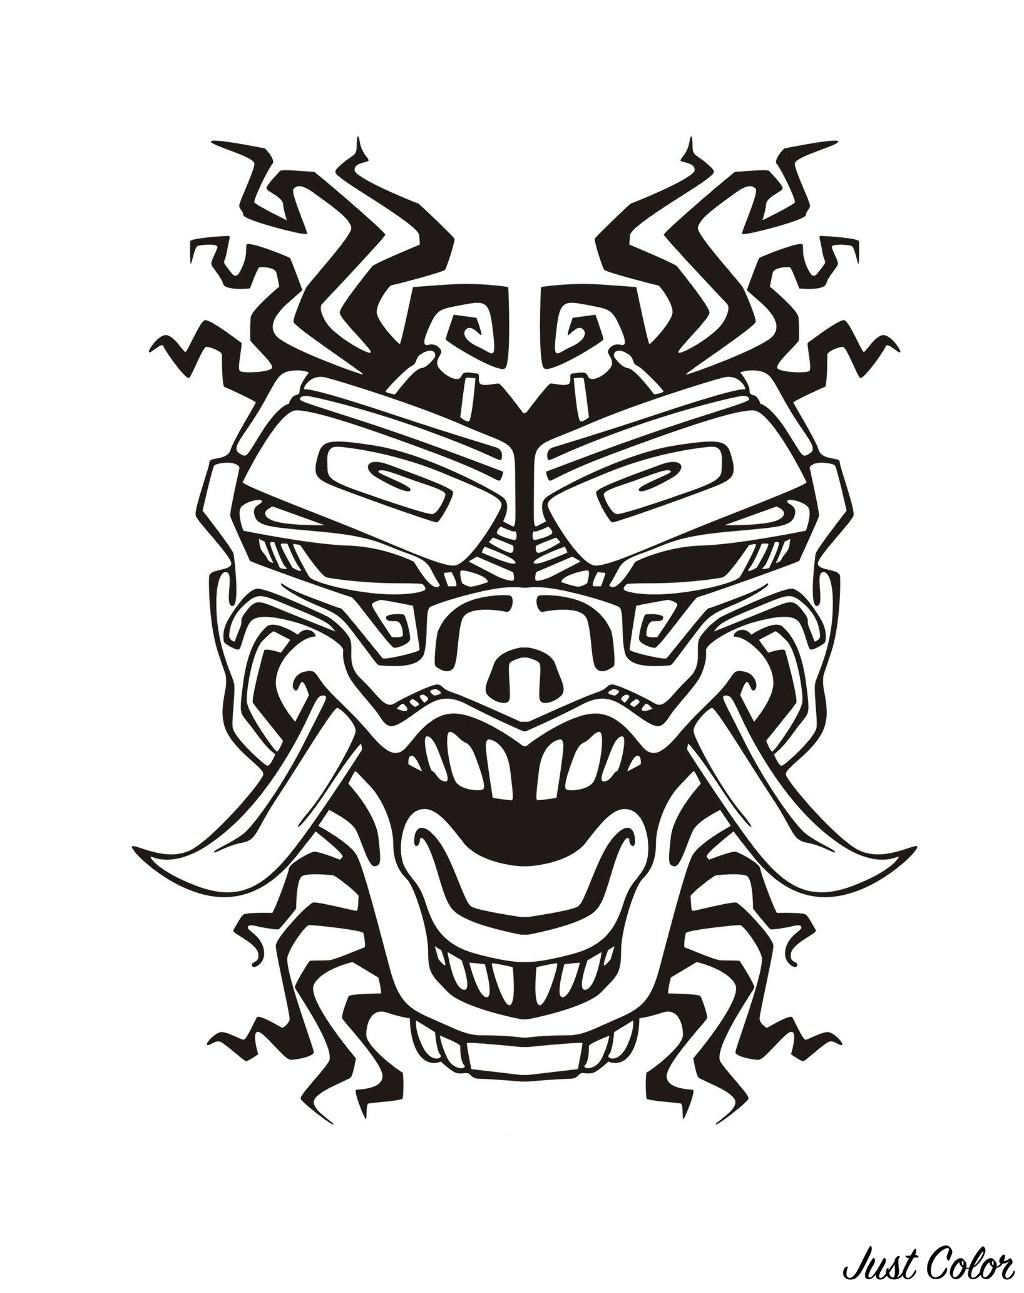 Mask inspired by Aztecs, Mayans and Incas - 2